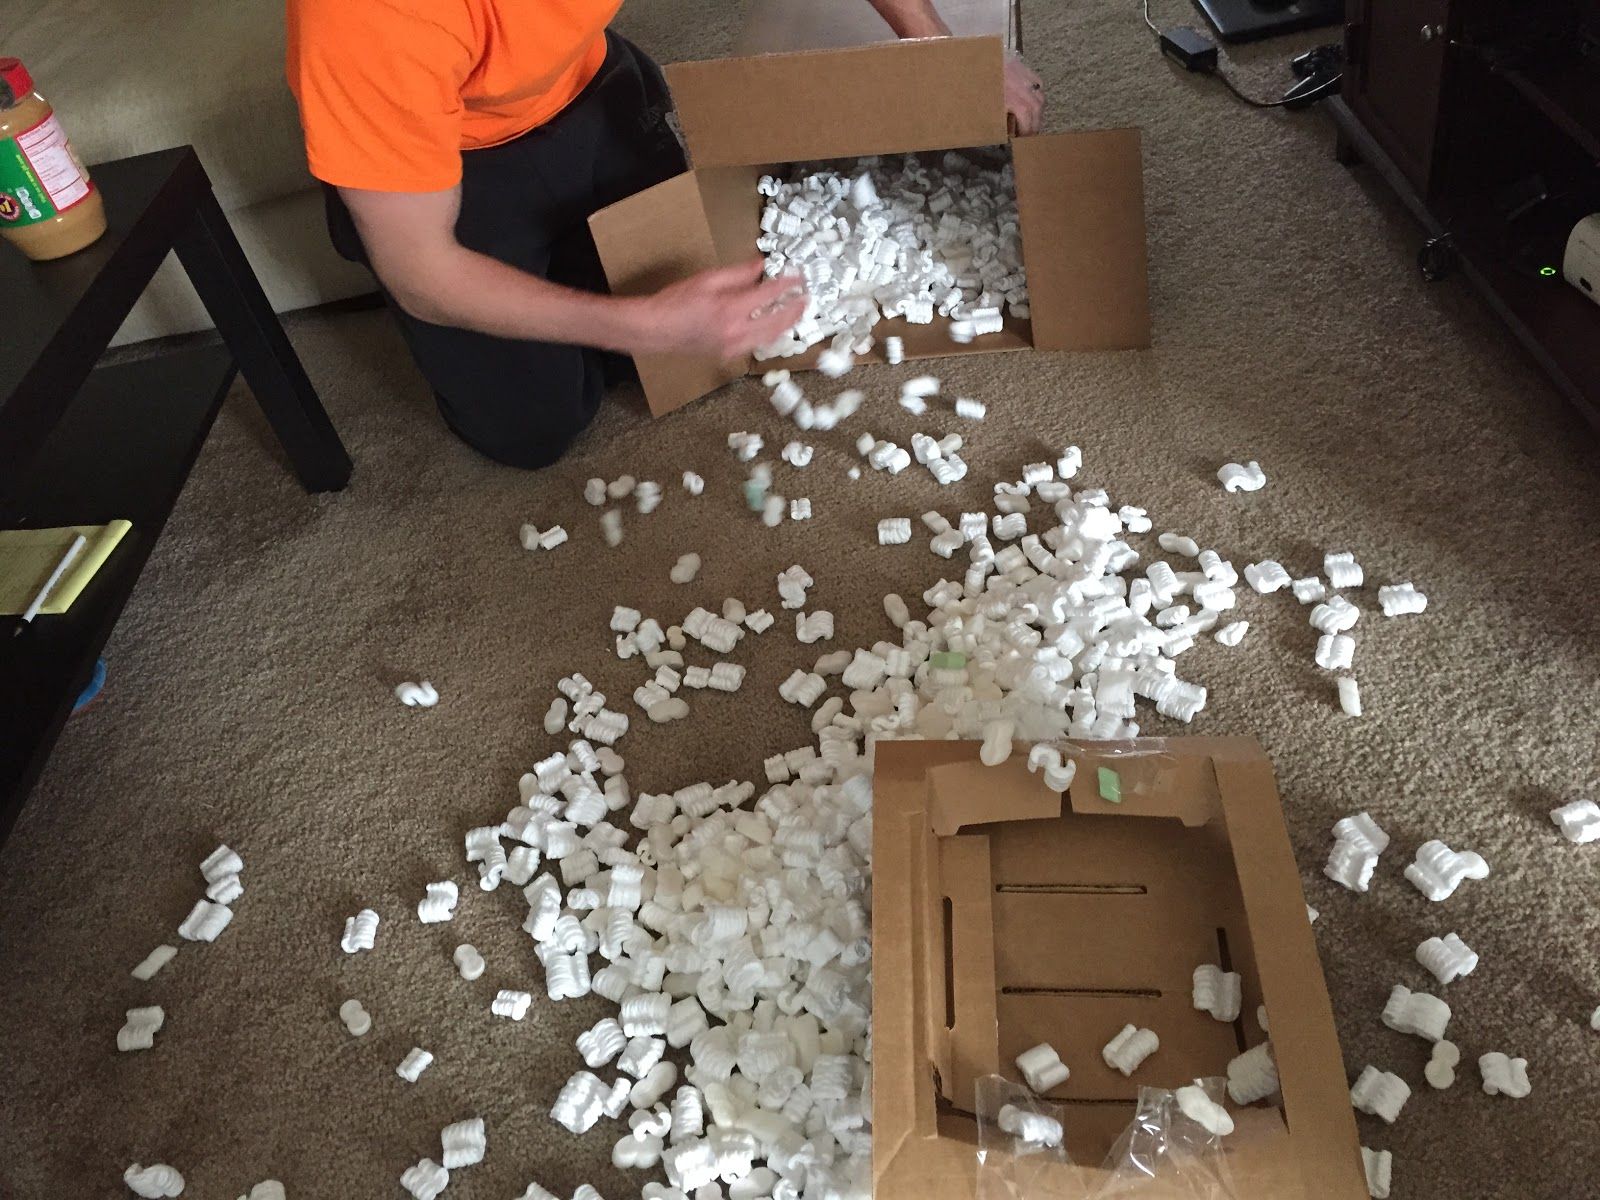 packing peanuts on the floor